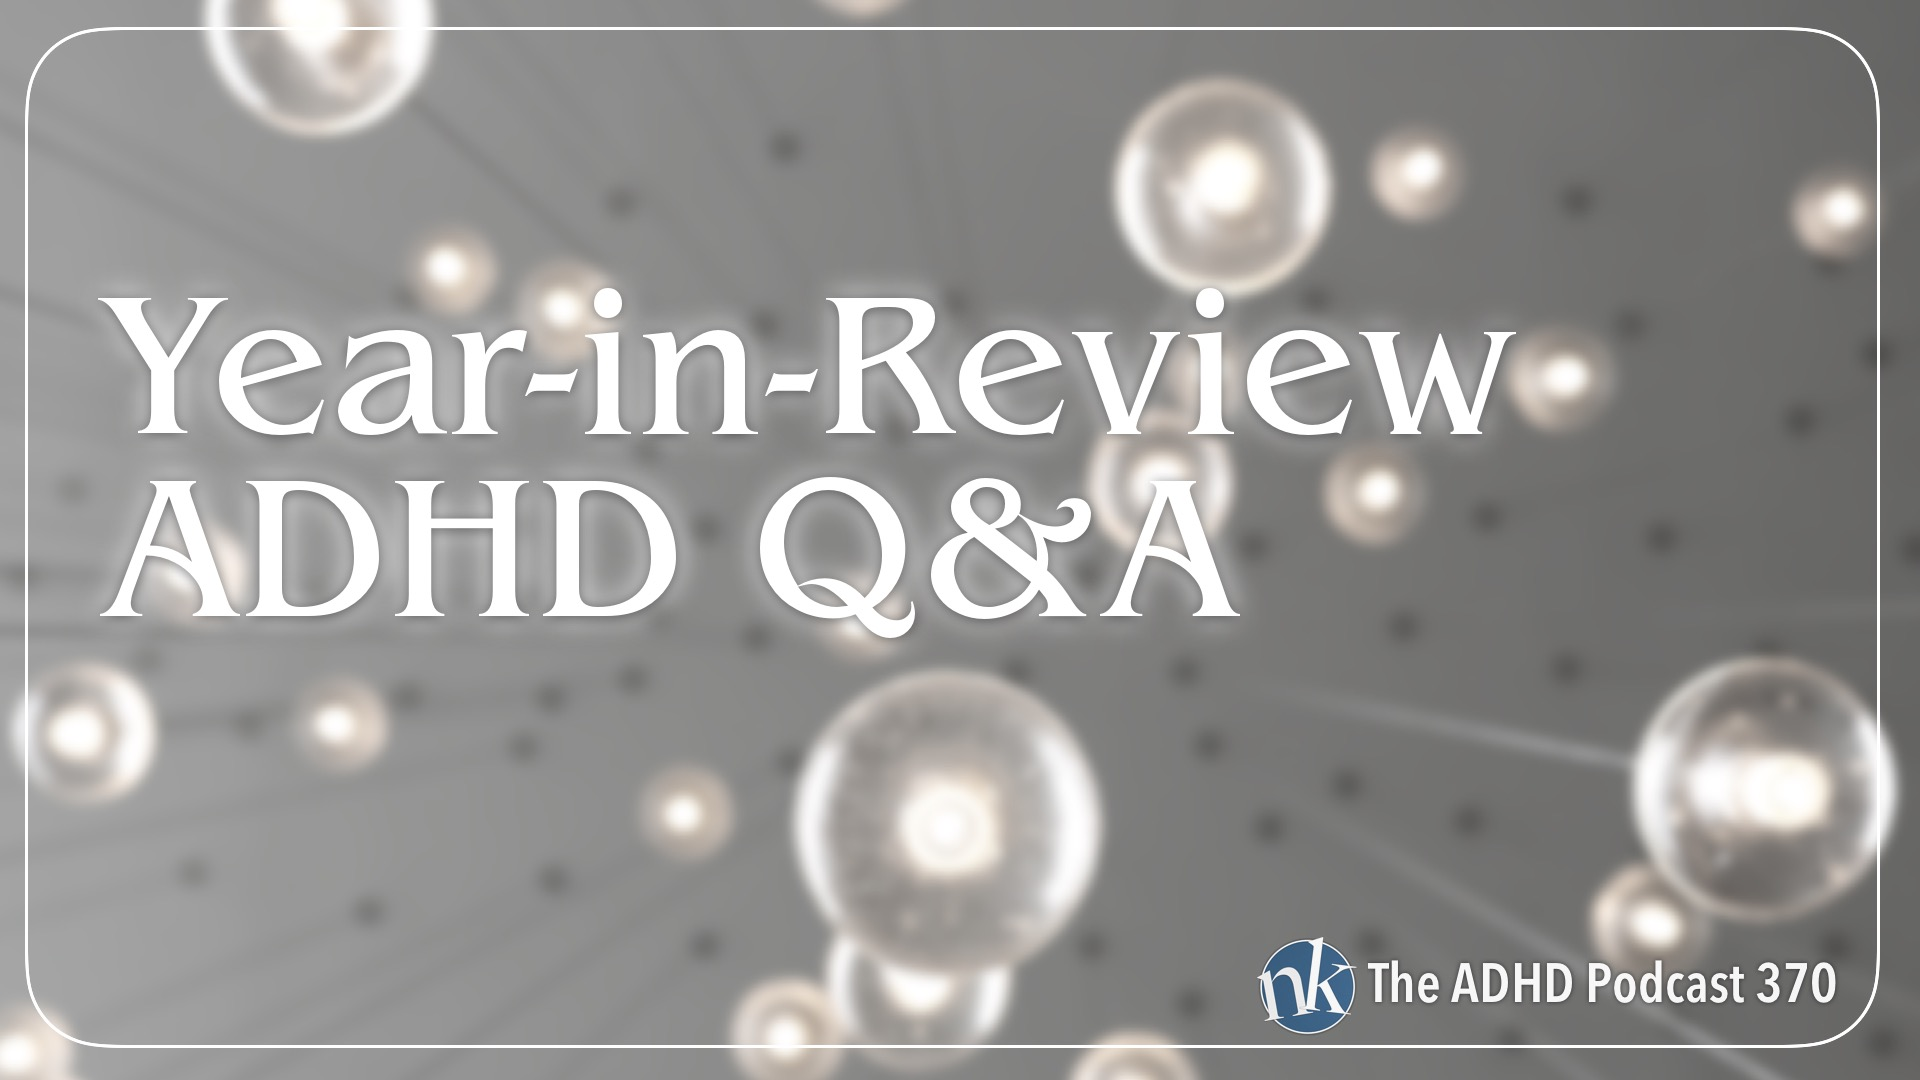 Listen to the ADHD Q&A Episode